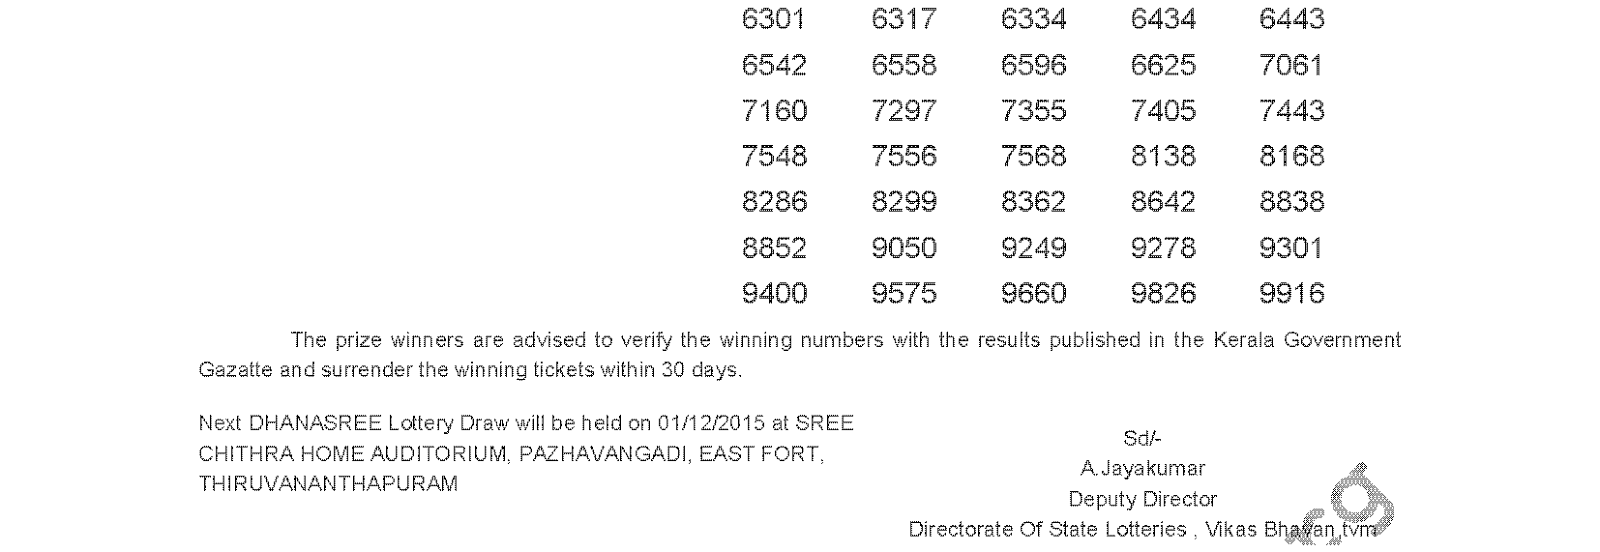 DHANASREE Lottery DS 213 Result 24-11-2015